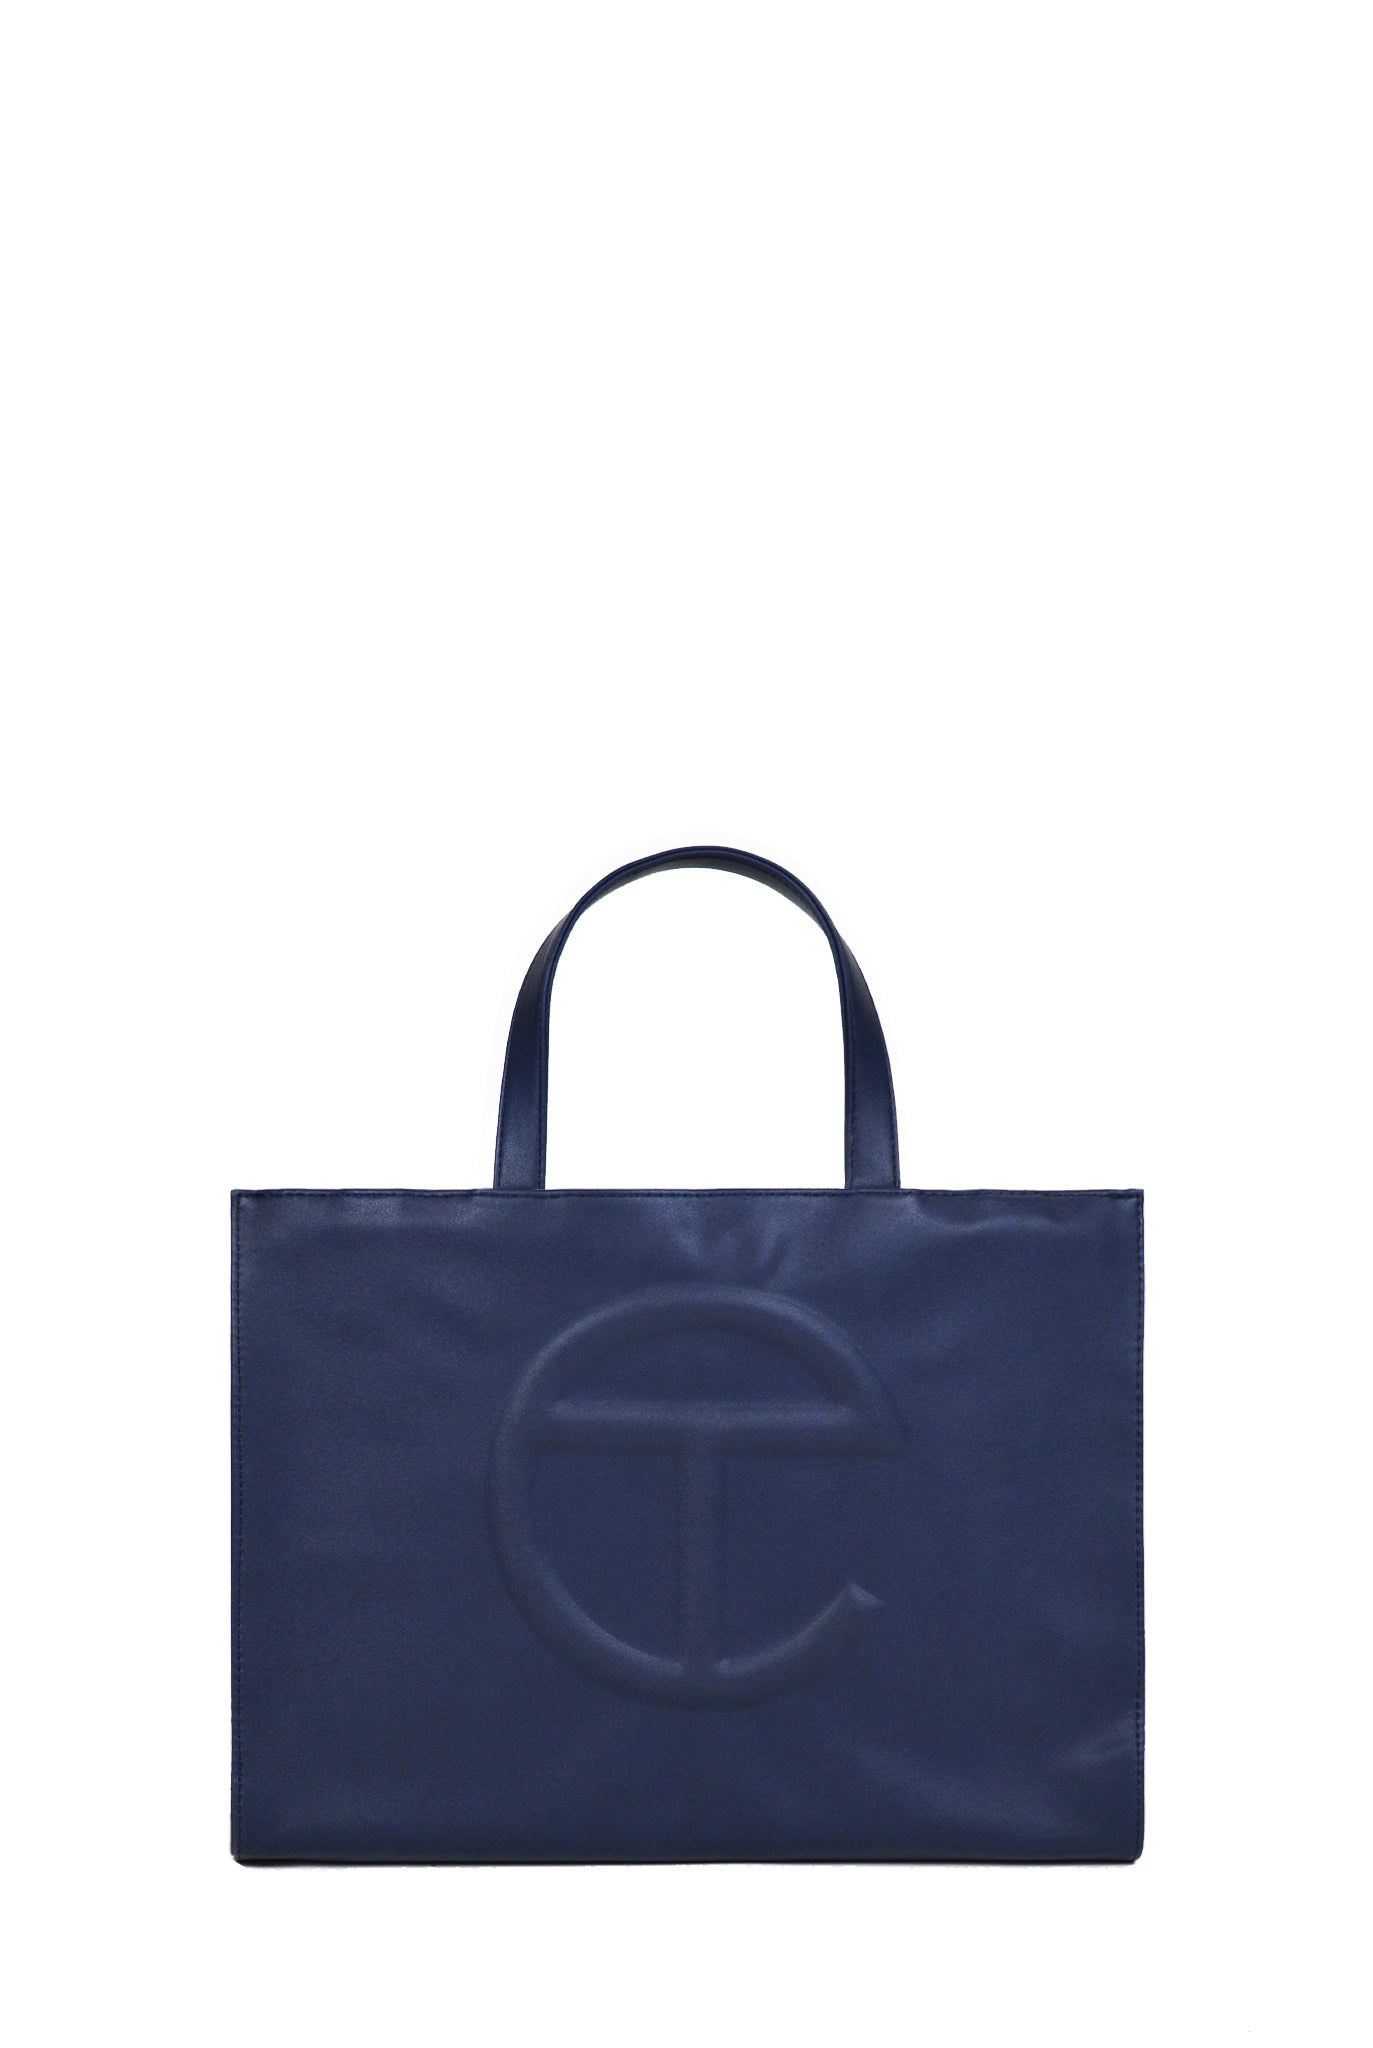 Telfar Medium Shopping Bag, Navy